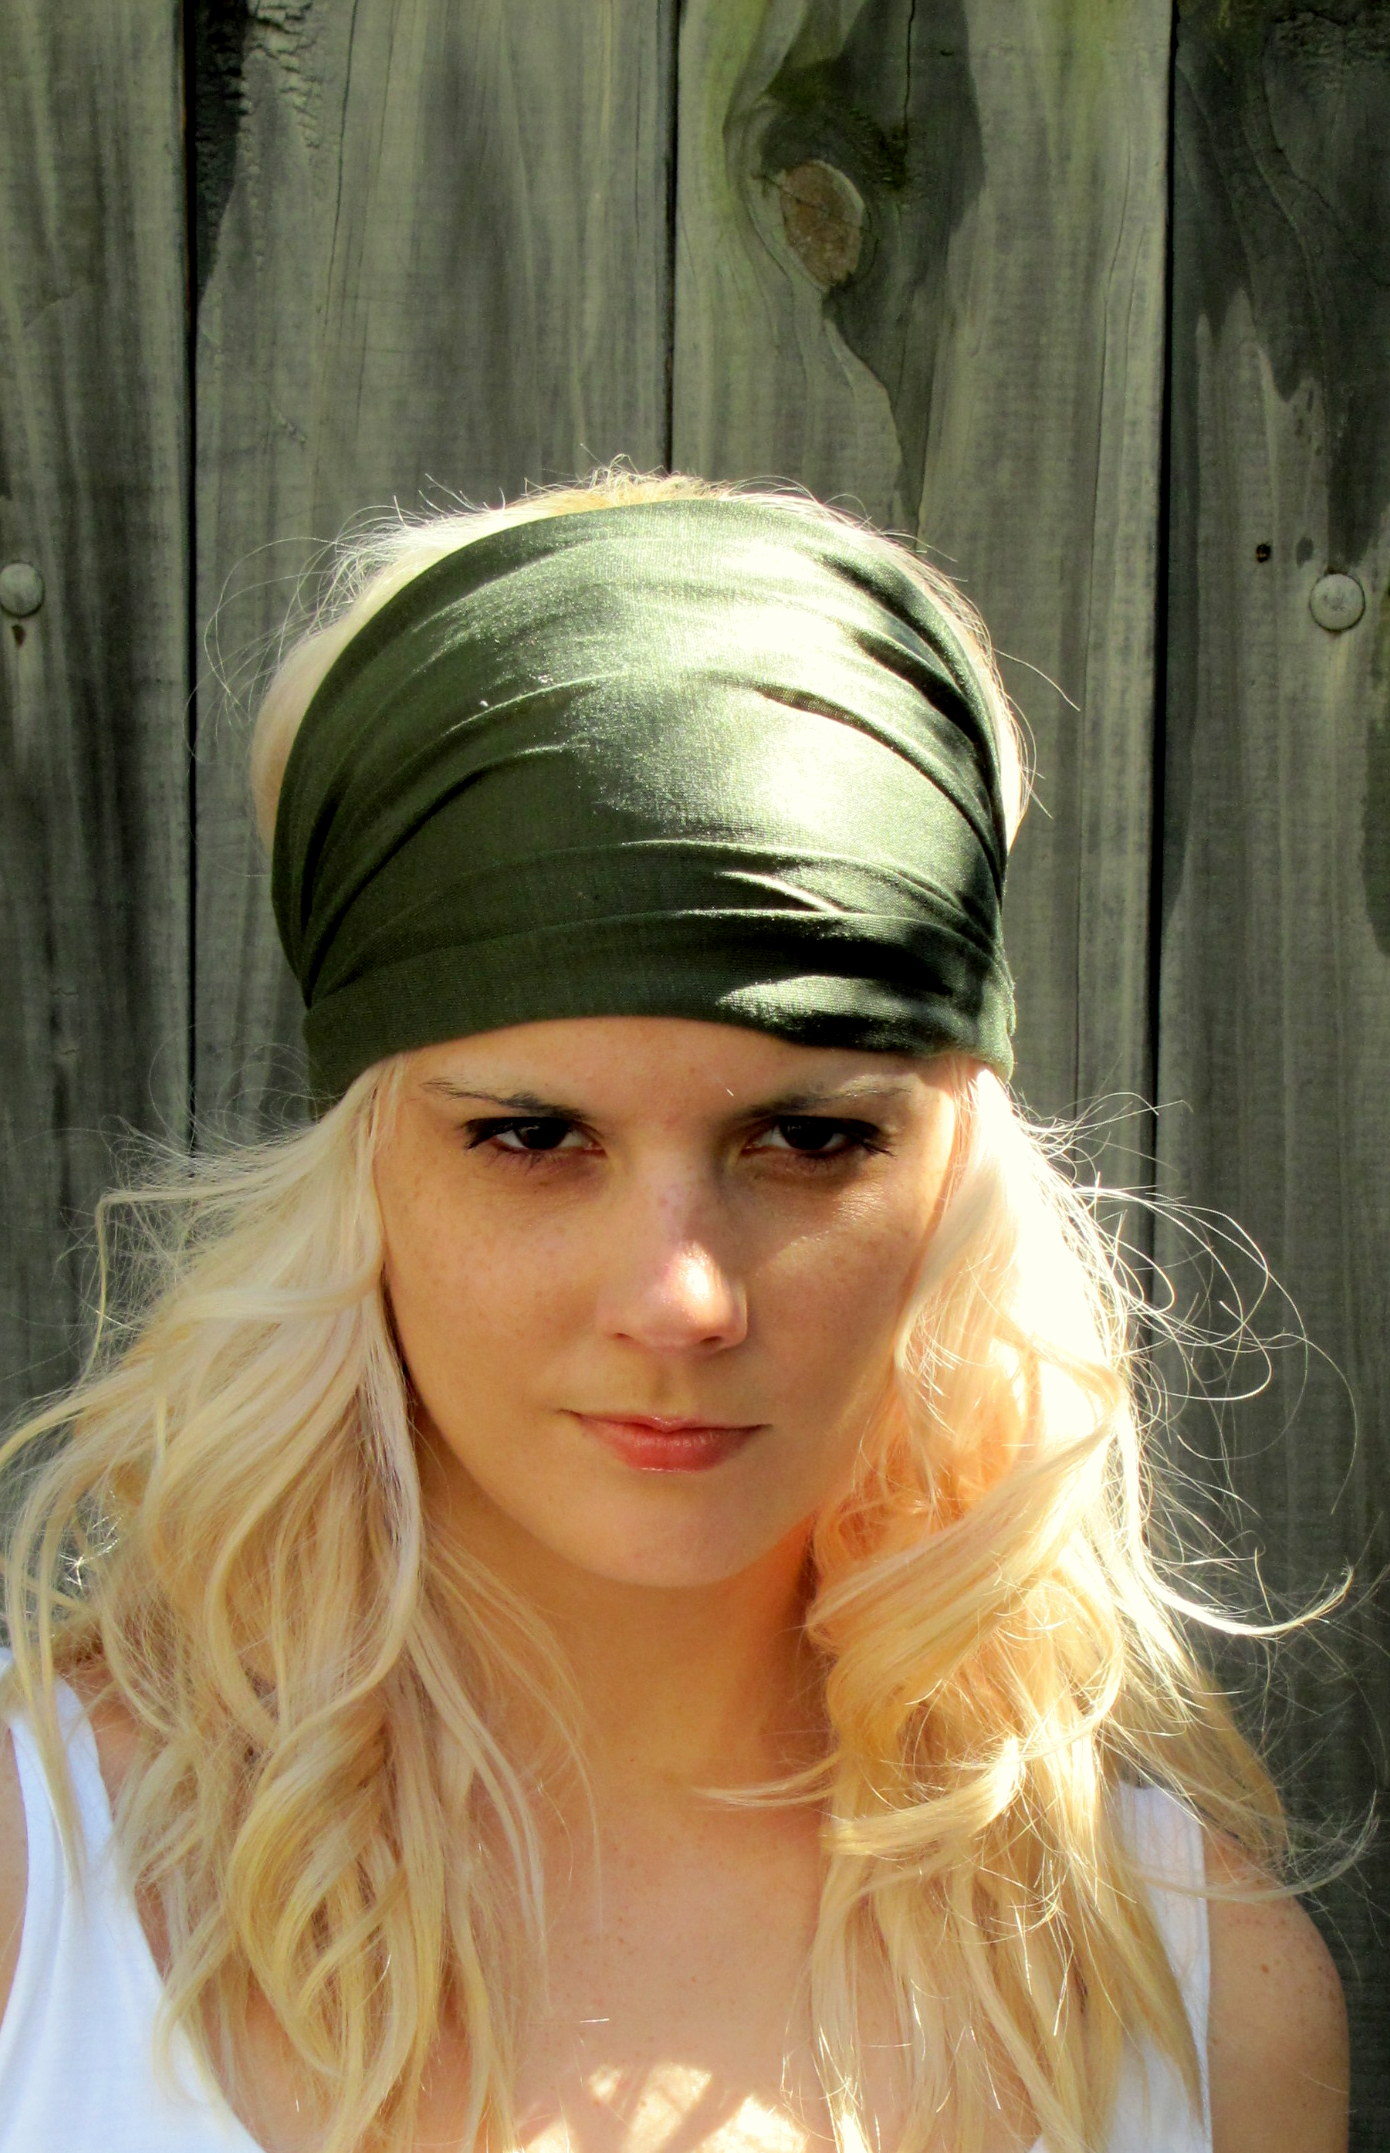 ... Cotton Stretchy Jersey Yoga Headband Wide Women s Turban Headband -  Thumbnail ... a959abe34b5